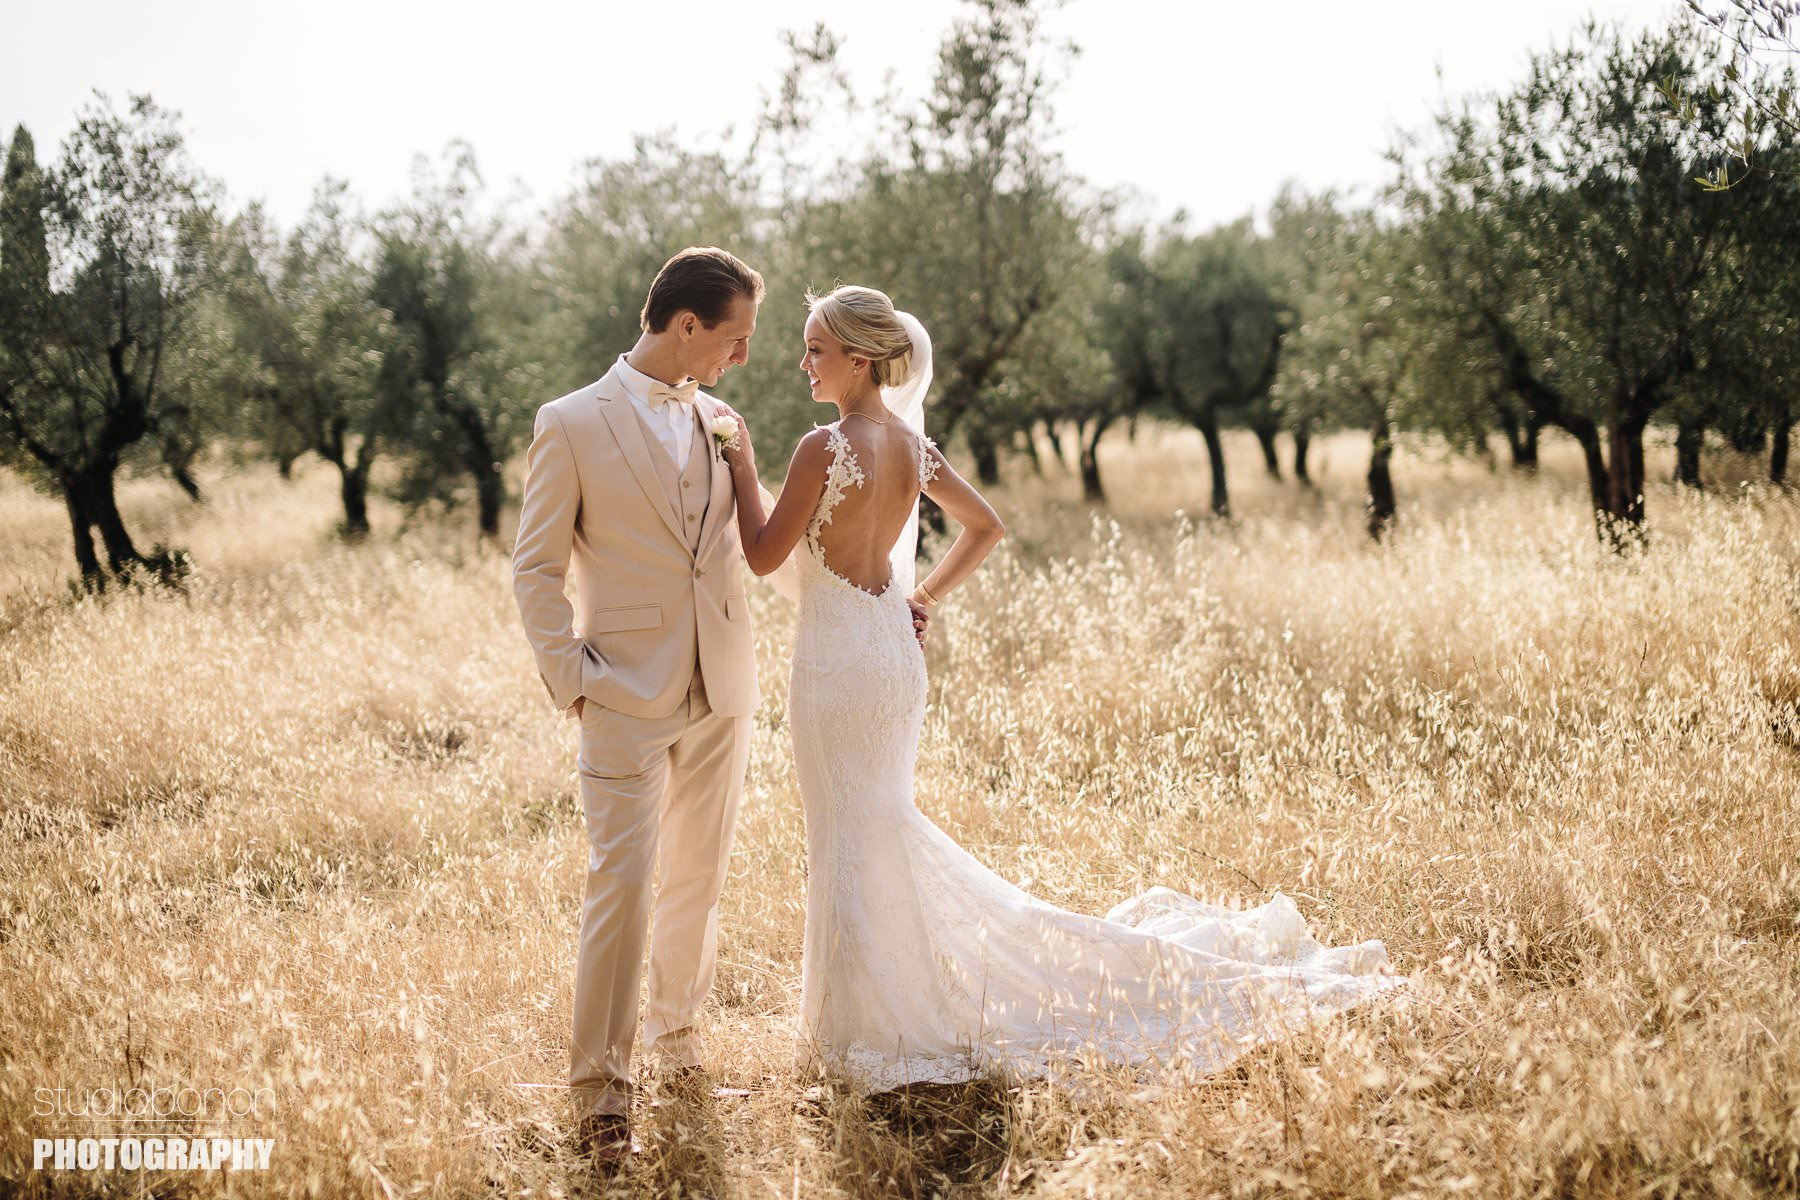 Lovely wedding photos in olive oil field at Vincigliata Castle, Florence countryside